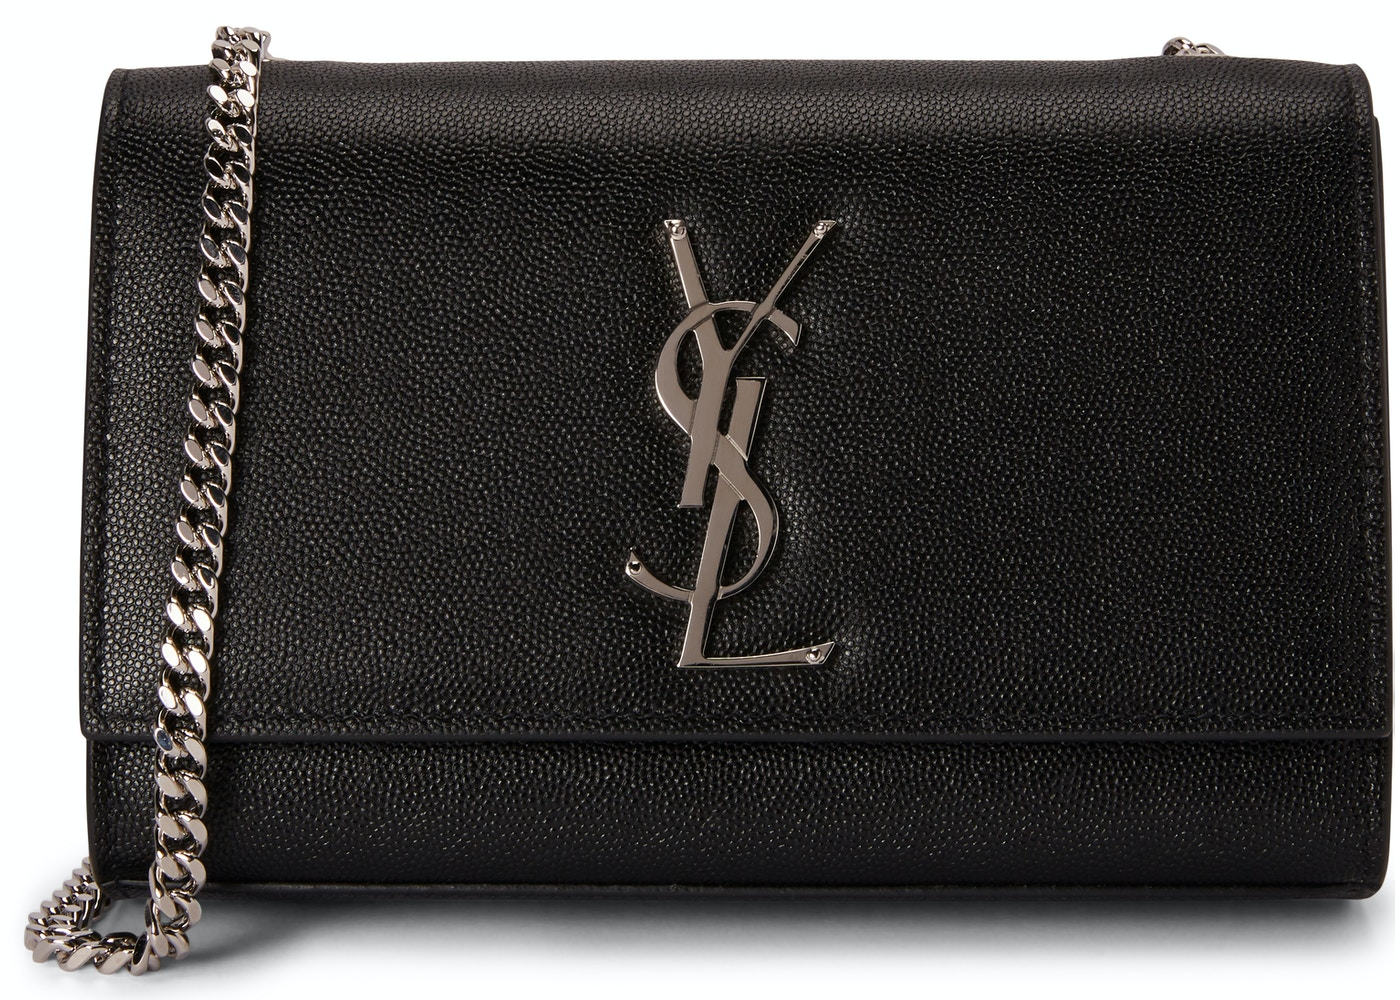 409bf290827c Saint Laurent Chain Kate Textured Leather Interlocking Metal YSL Signature  Small Black. Textured Leather Interlocking Metal YSL Signature Small Black